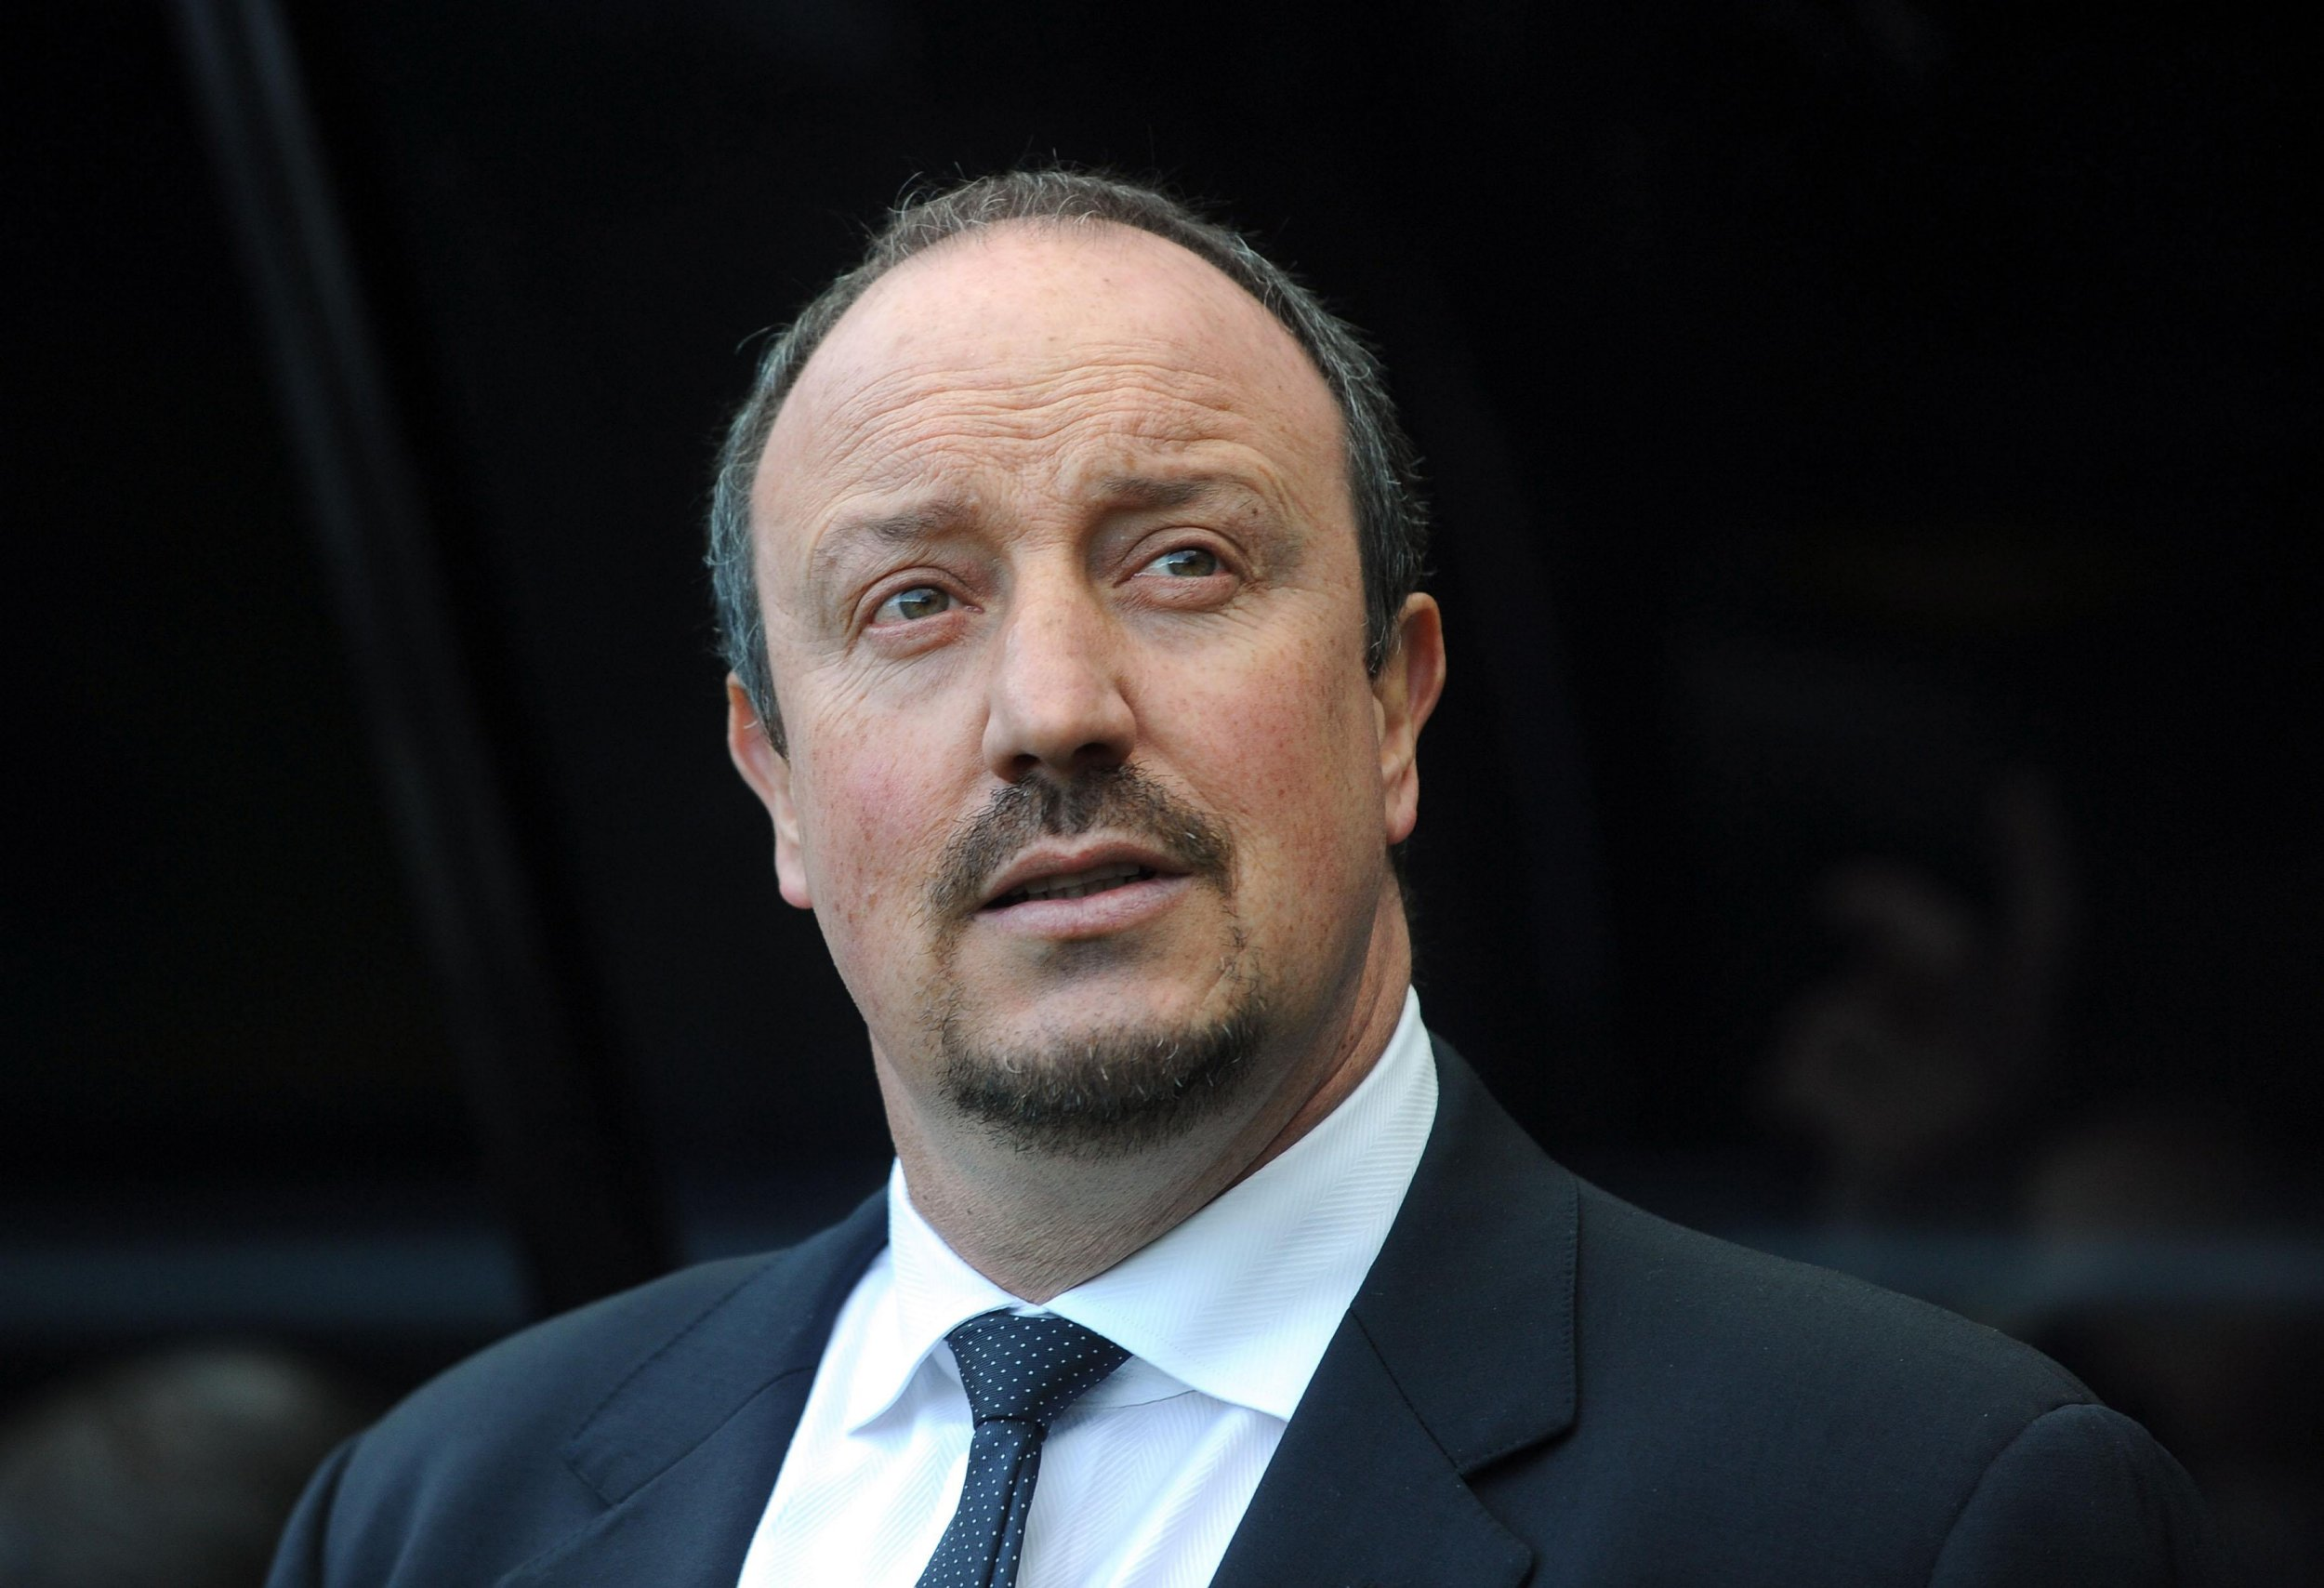 File photo dated 02-02-2013 of Rafael Benitez PRESS ASSOCIATION Photo. Issue date: Friday March 11, 2016. Rafael Benitez has signed a three-year deal to become the new manager of Newcastle, the club have announced. See PA story SOCCER Newcastle. Photo credit should read Owen Humphreys/PA Wire.